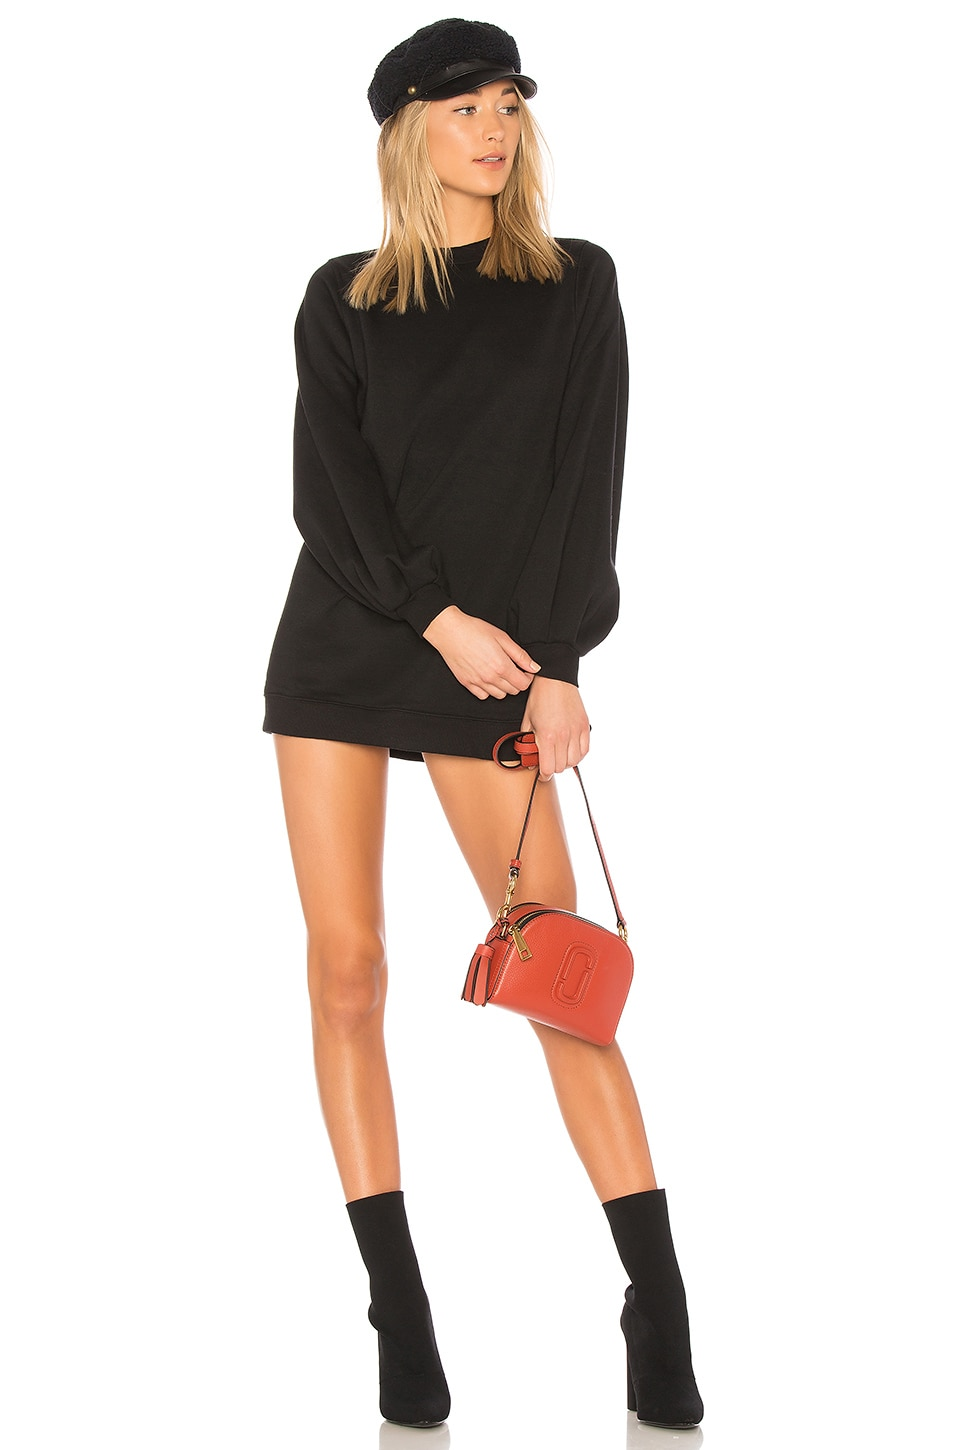 Lovers + Friends Jessa Sweatshirt Dress in Black